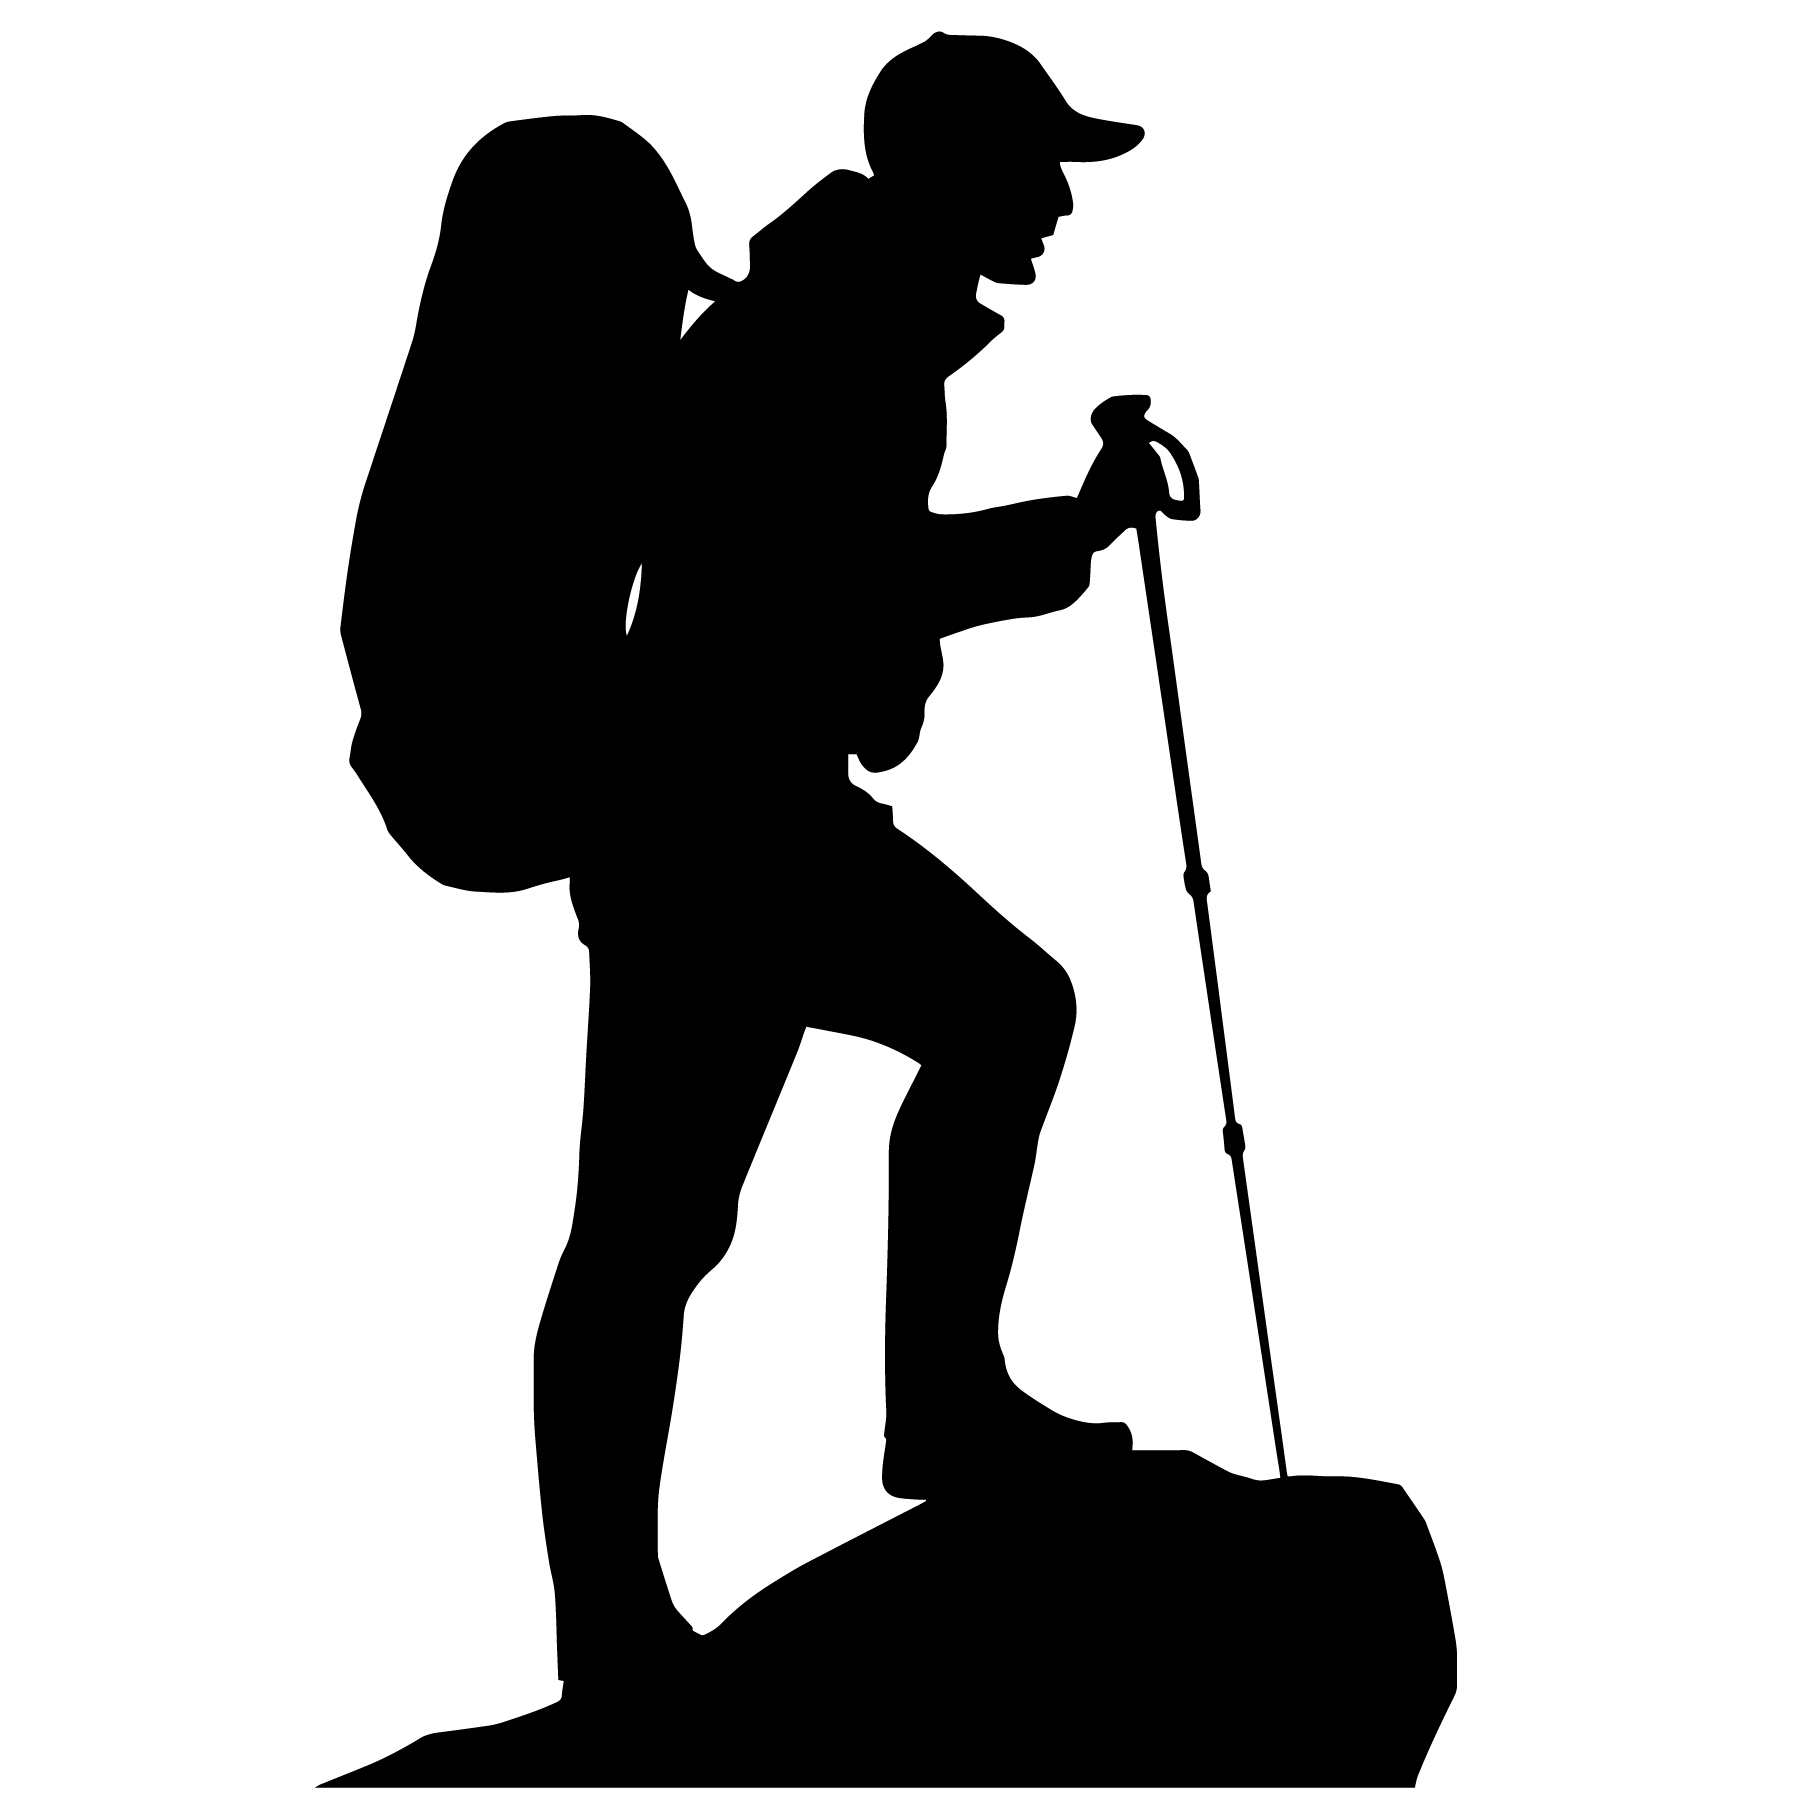 hiking silhouette hiking active safe silhouette hiking